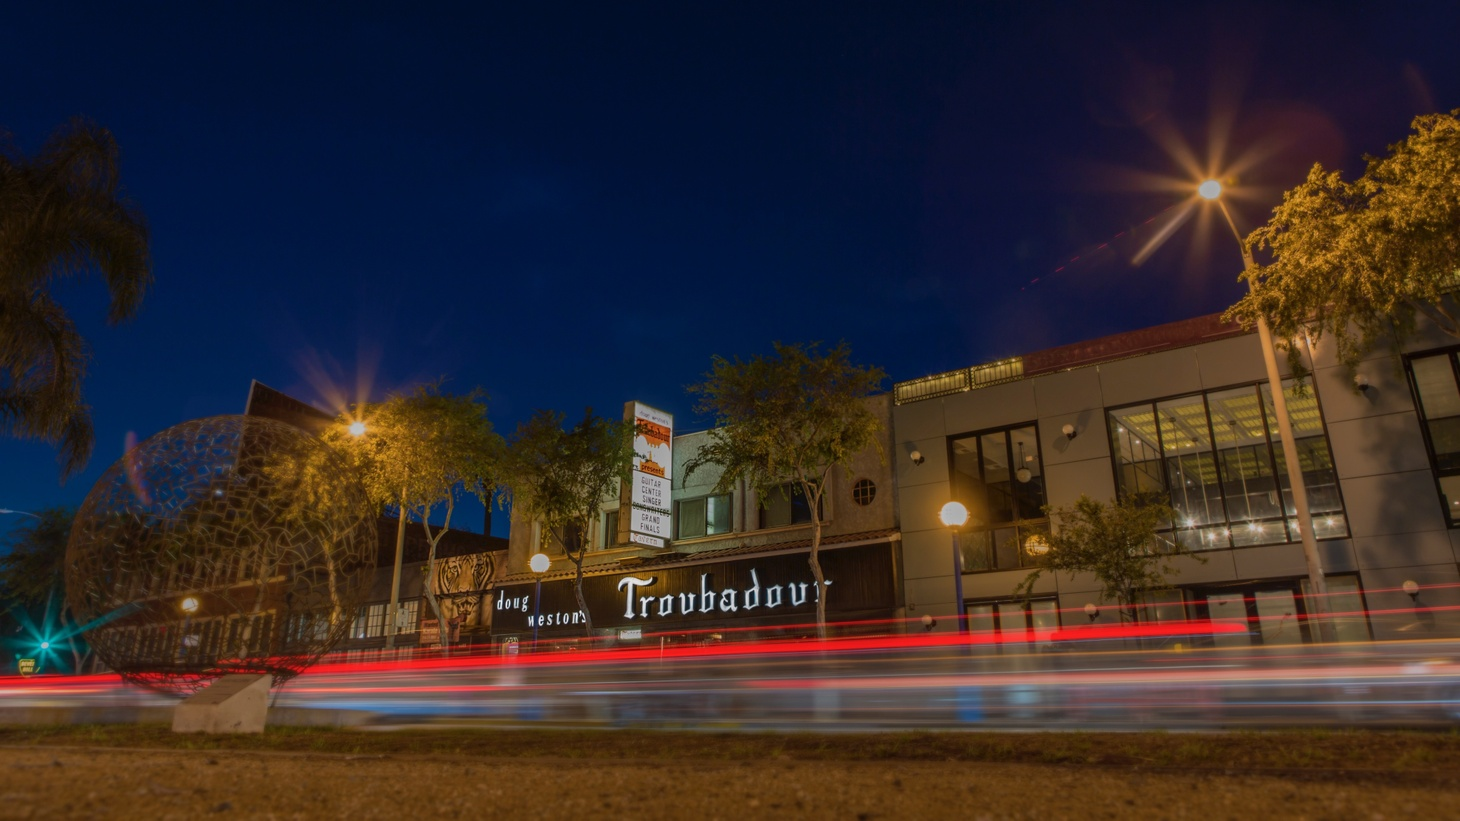 The Troubadour has been operating in West Hollywood since 1957, but its talent buyer Amy Madrigali says there's a chance it could close permanently if there's no financial relief.